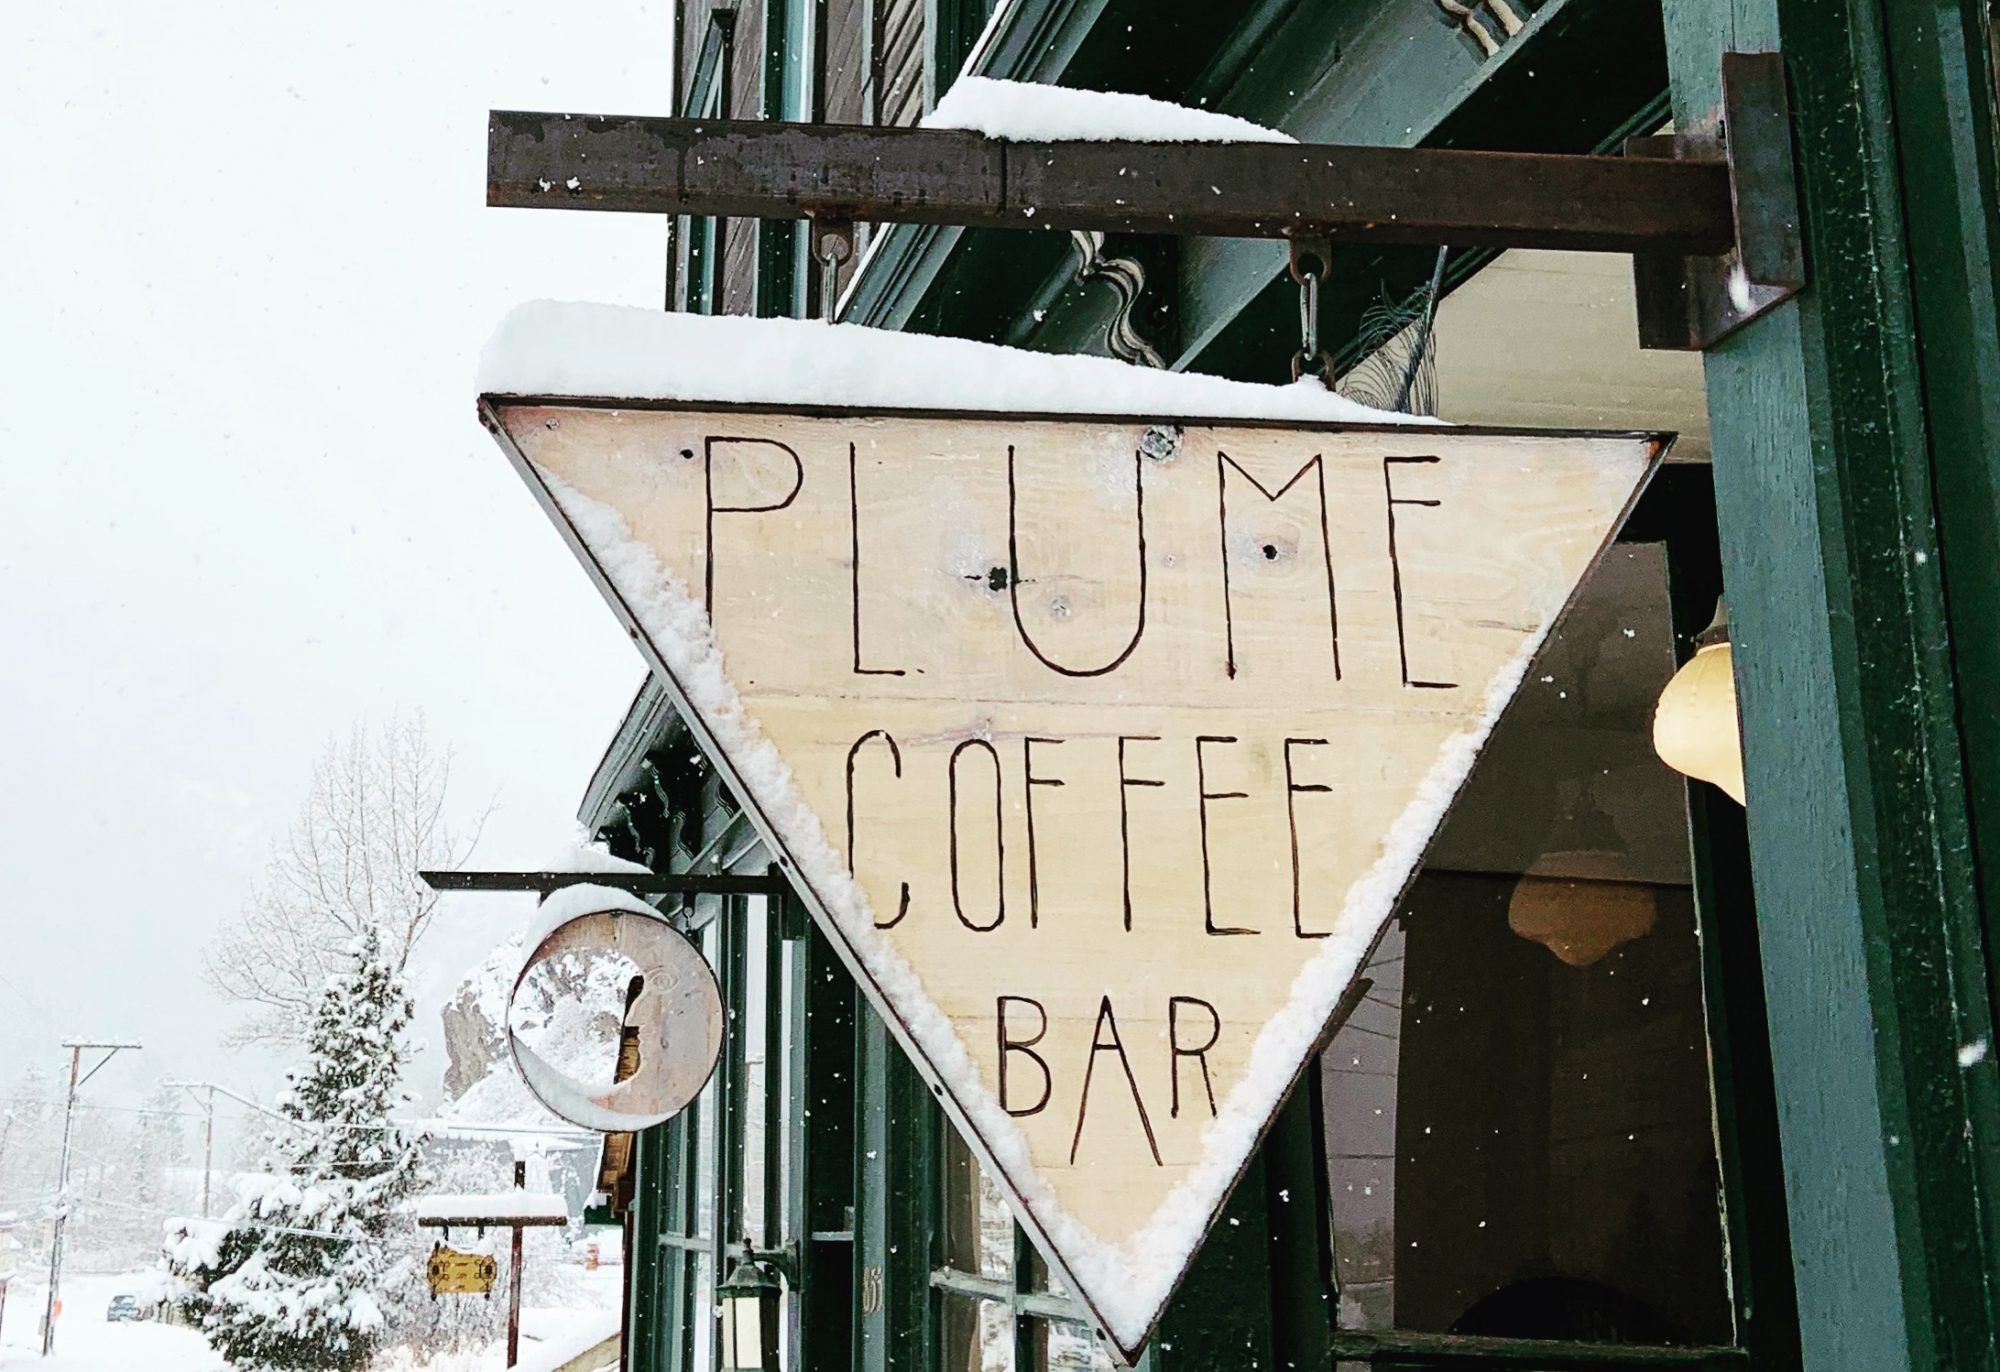 Plume Coffee Bar